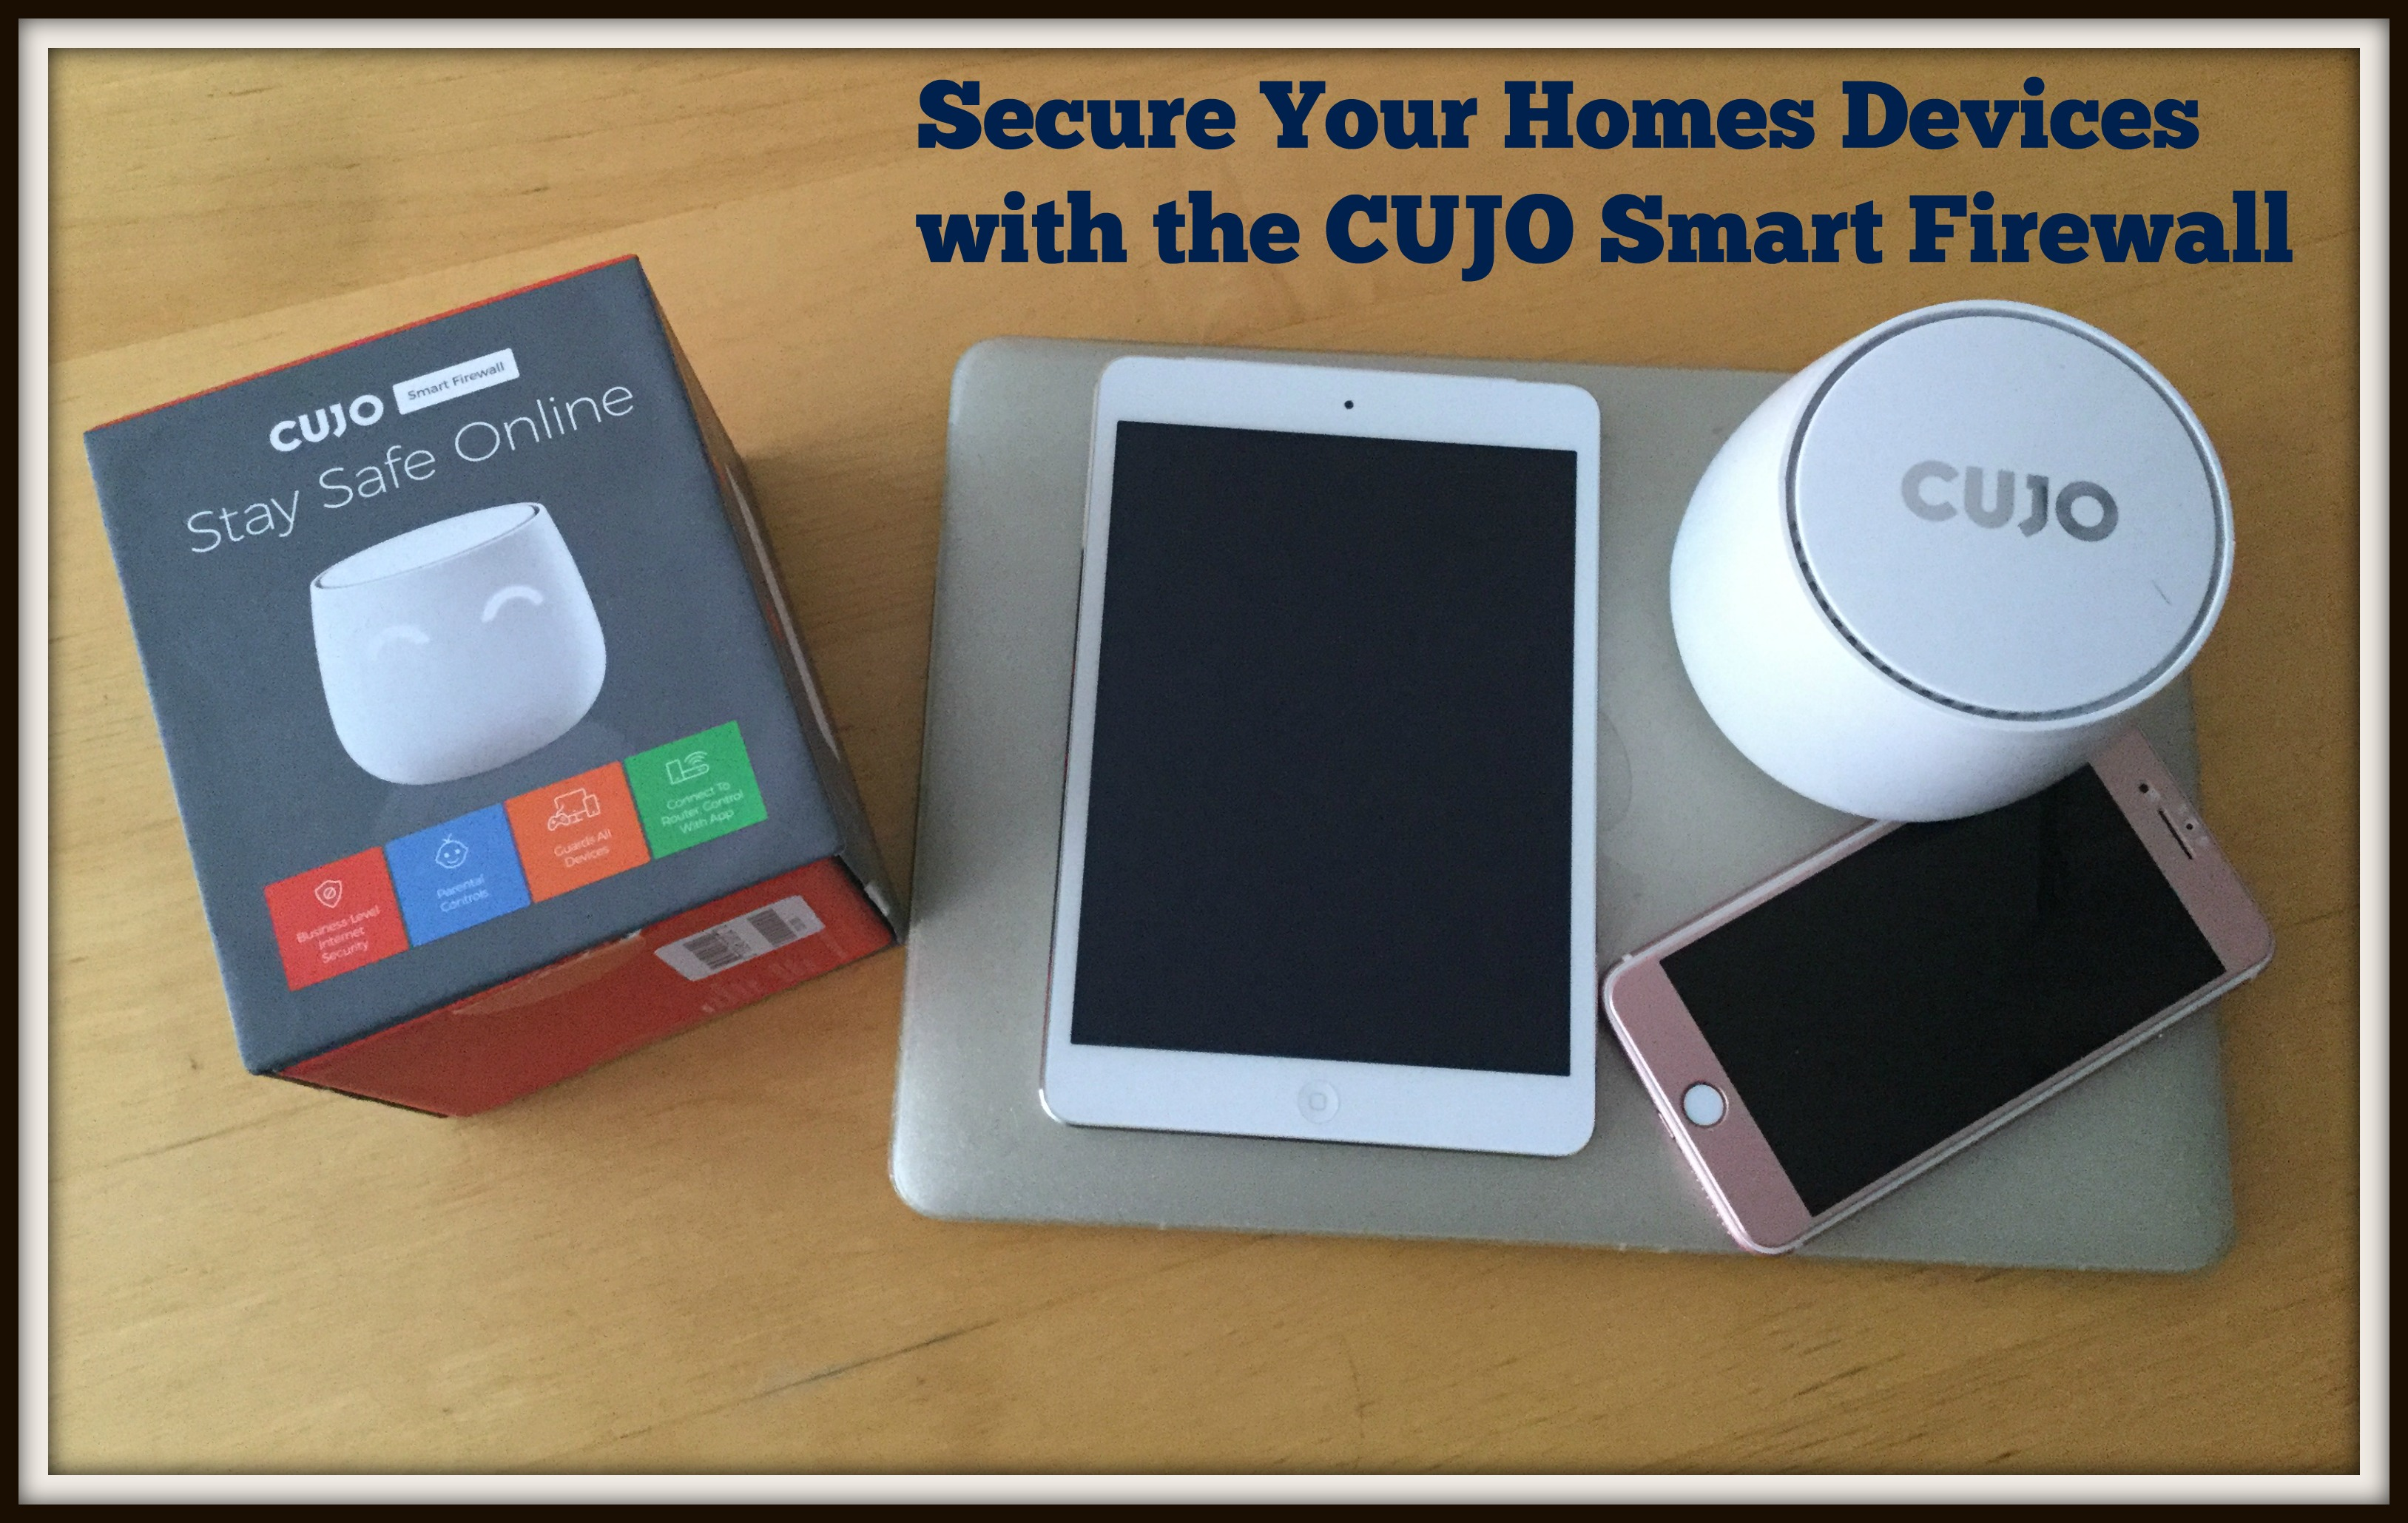 Secure Your Homes Devices with the CUJO Smart Firewall